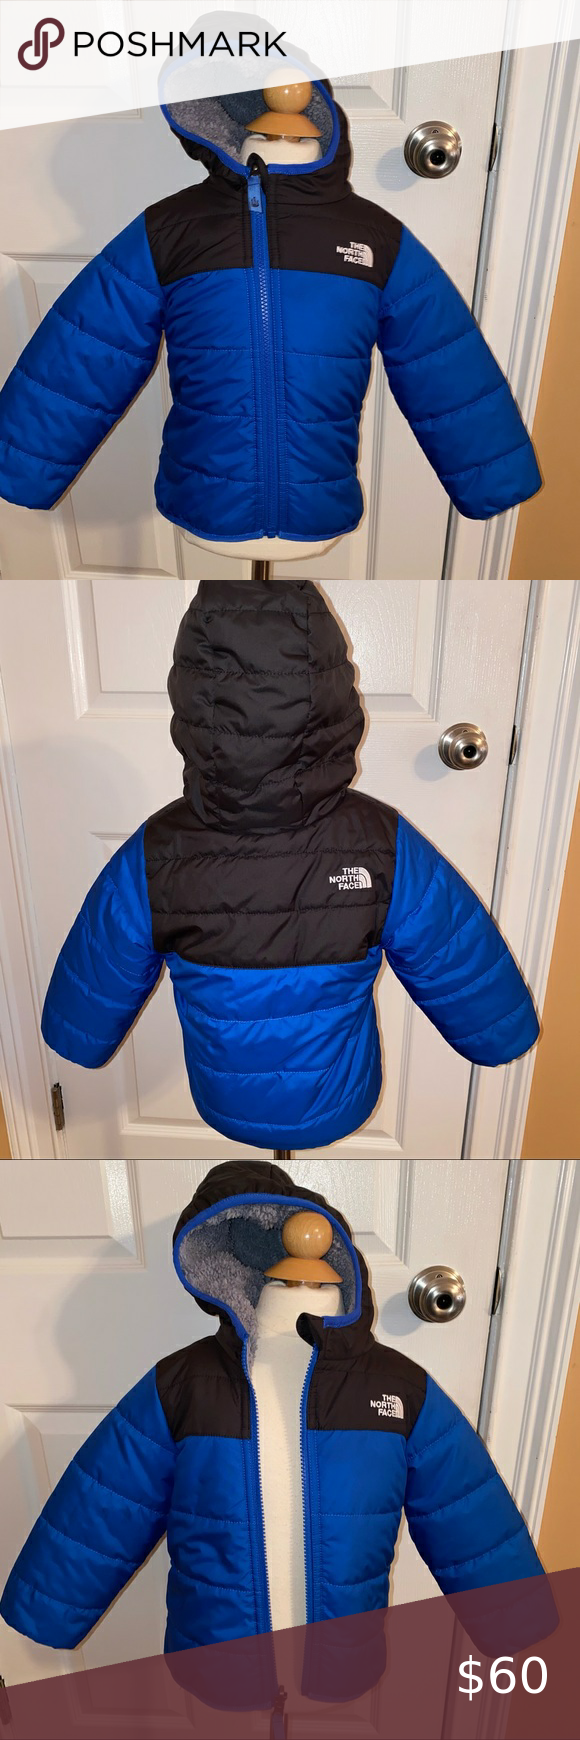 Toddler The North Face Puffy Jacket North Face Puffy Jacket Puffy Jacket The North Face [ 1740 x 580 Pixel ]